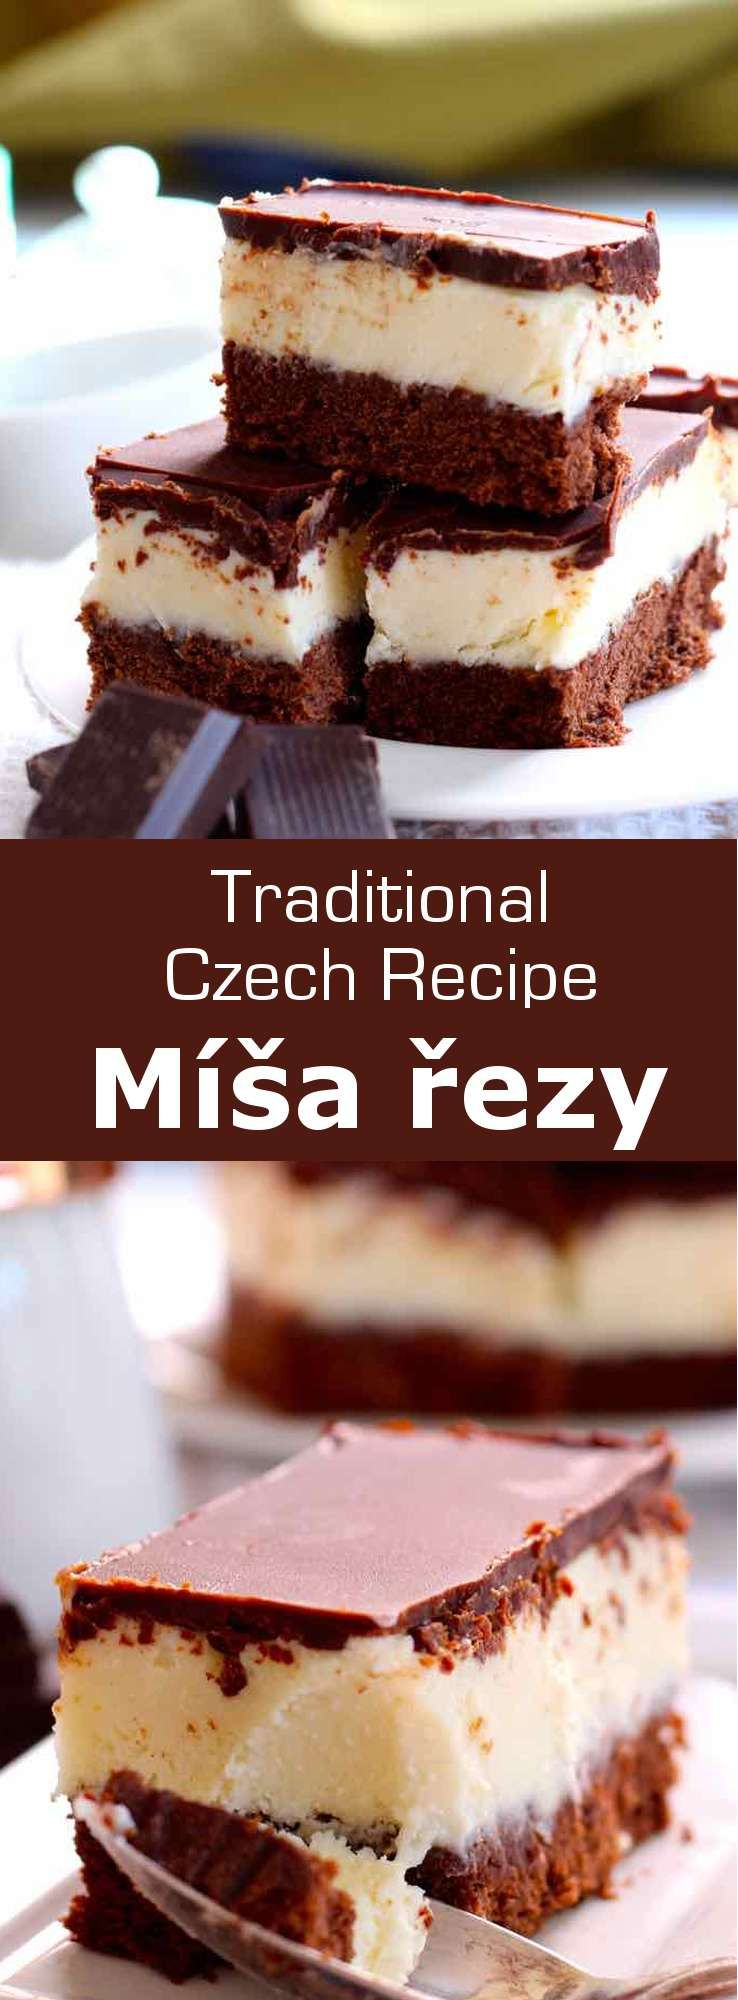 Míša řezy is a delicious traditional Czech cake that consists of three layers: a chocolate sponge cake, a layer of cheesecake and a glossy chocolate icing. #CzechRepublic #CzechCuisine #CzechRecipe #Dessert #CzechDessert #Vegetarian #WorldCuisine #196flavors via @196flavors #czechrecipes